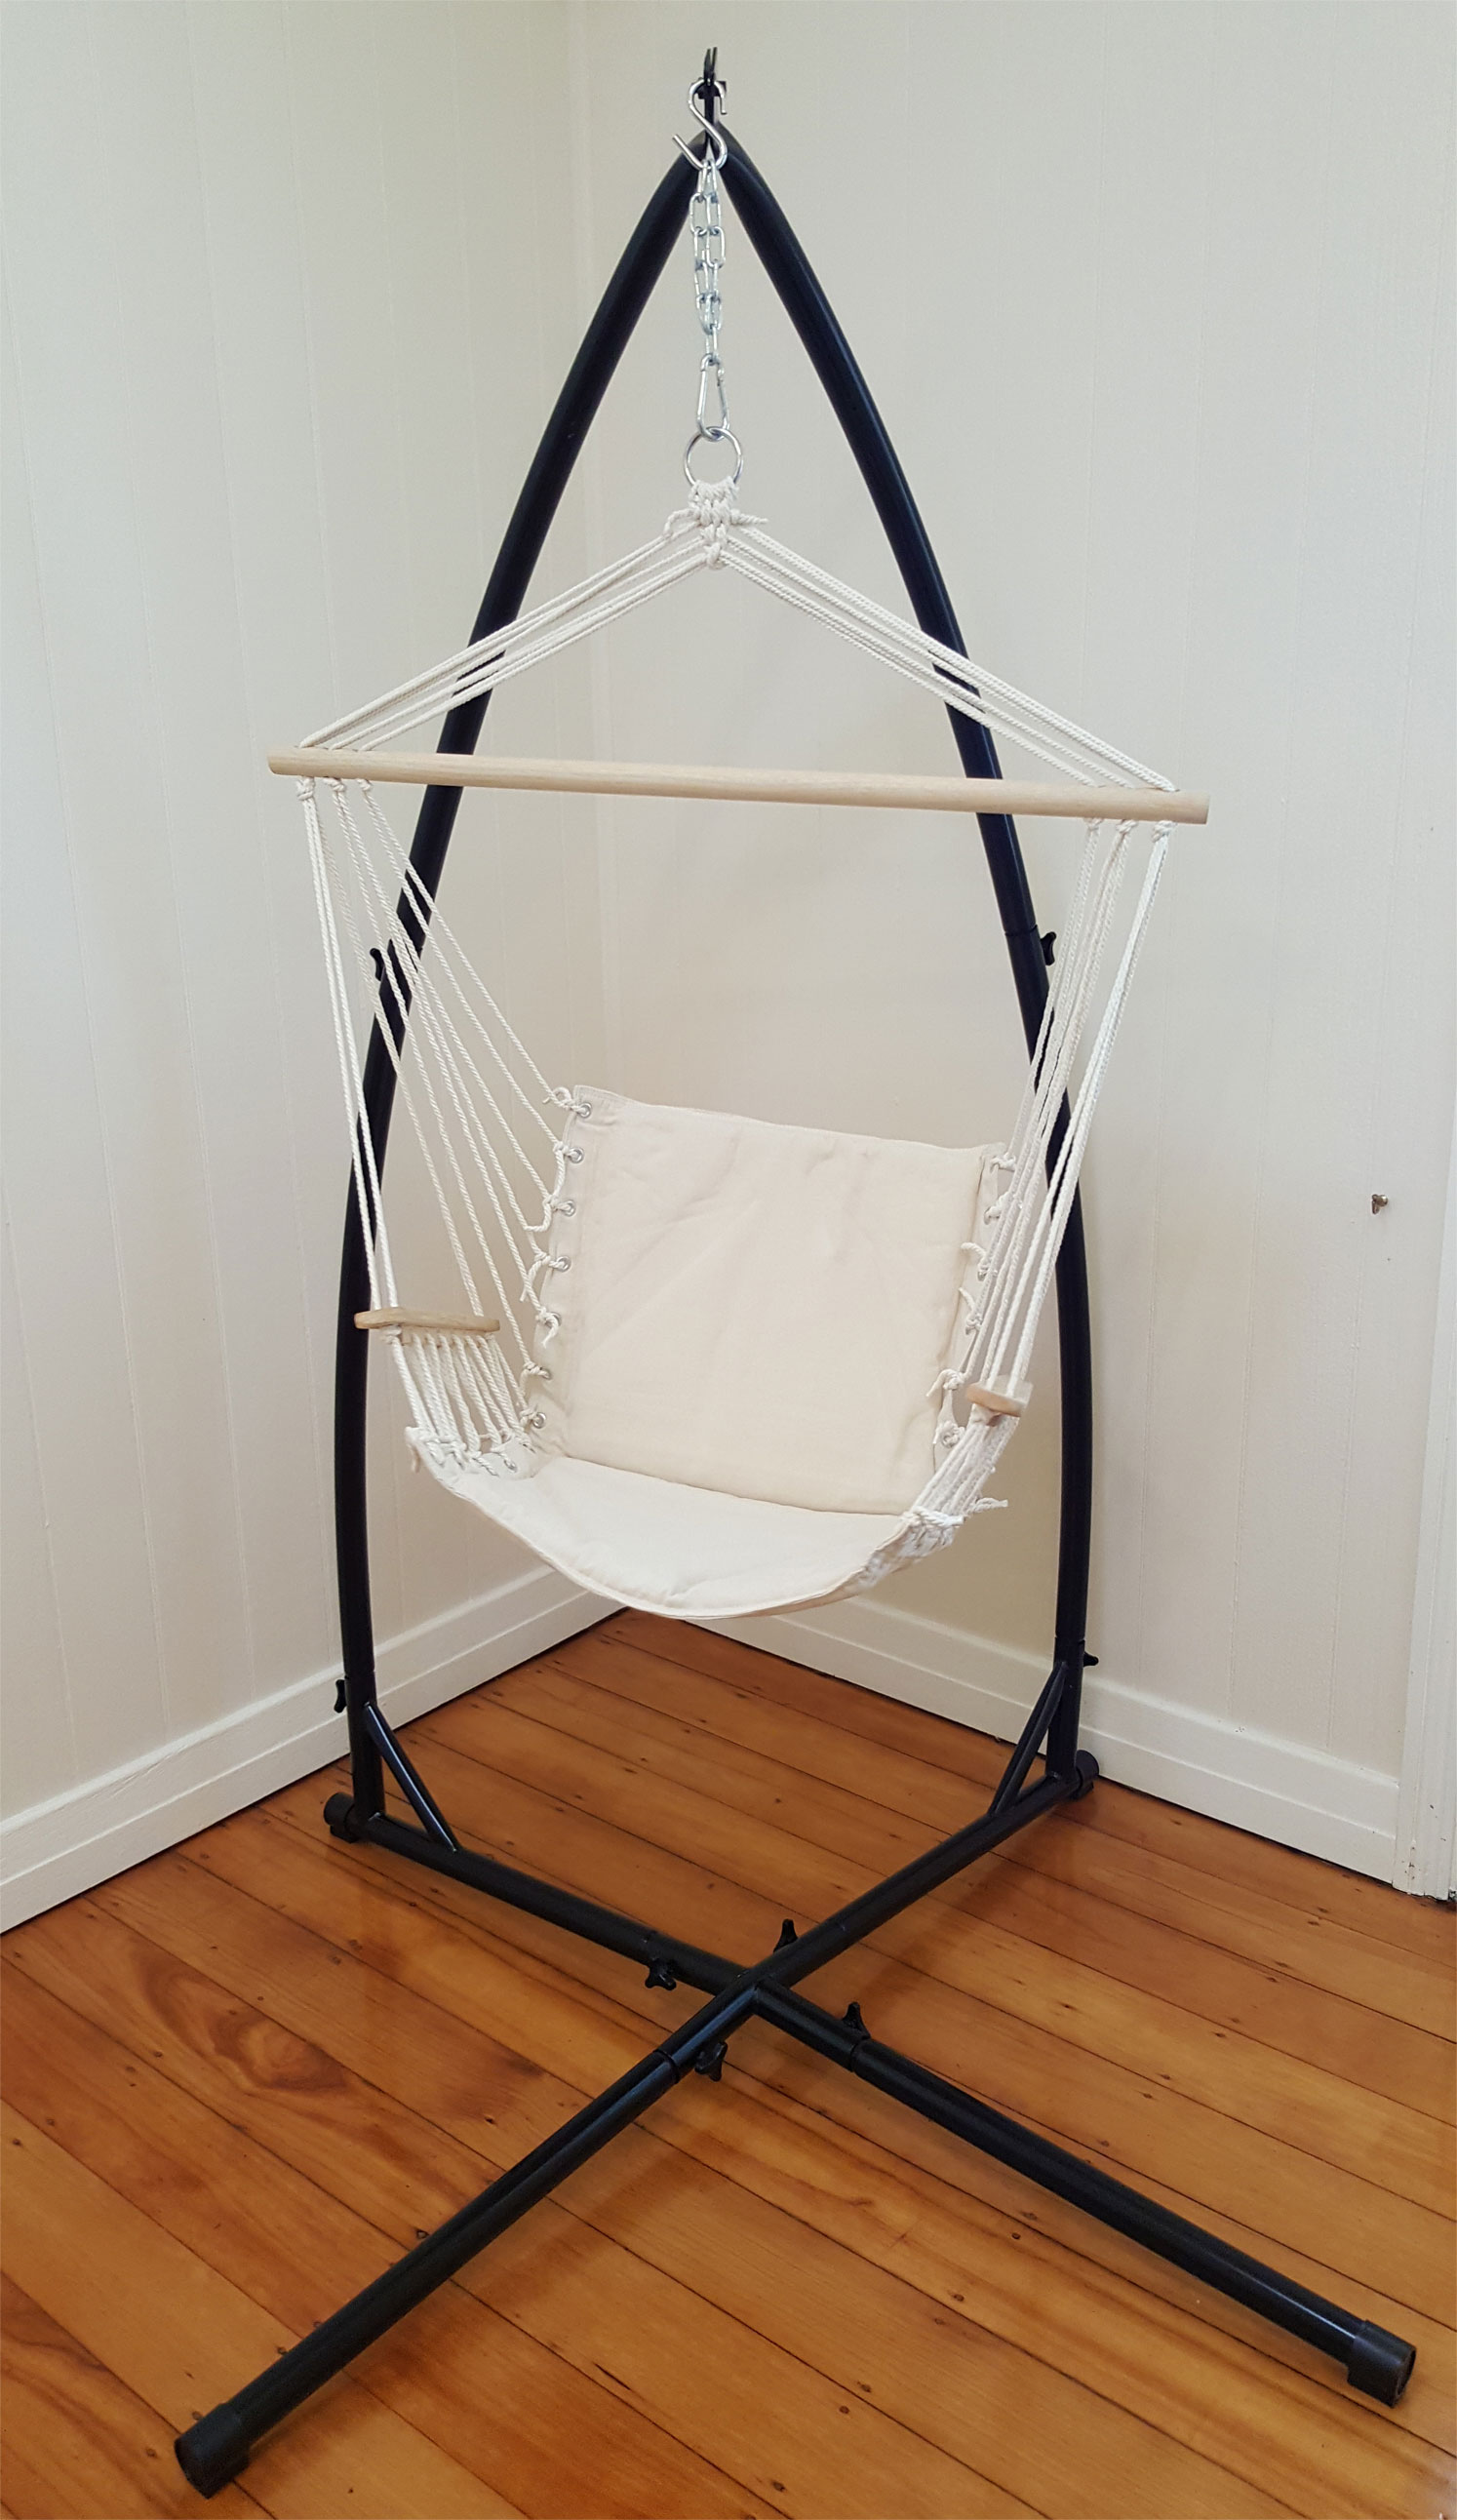 hanging chair ebay au under laptop stand beige padded hammock with armrests 43